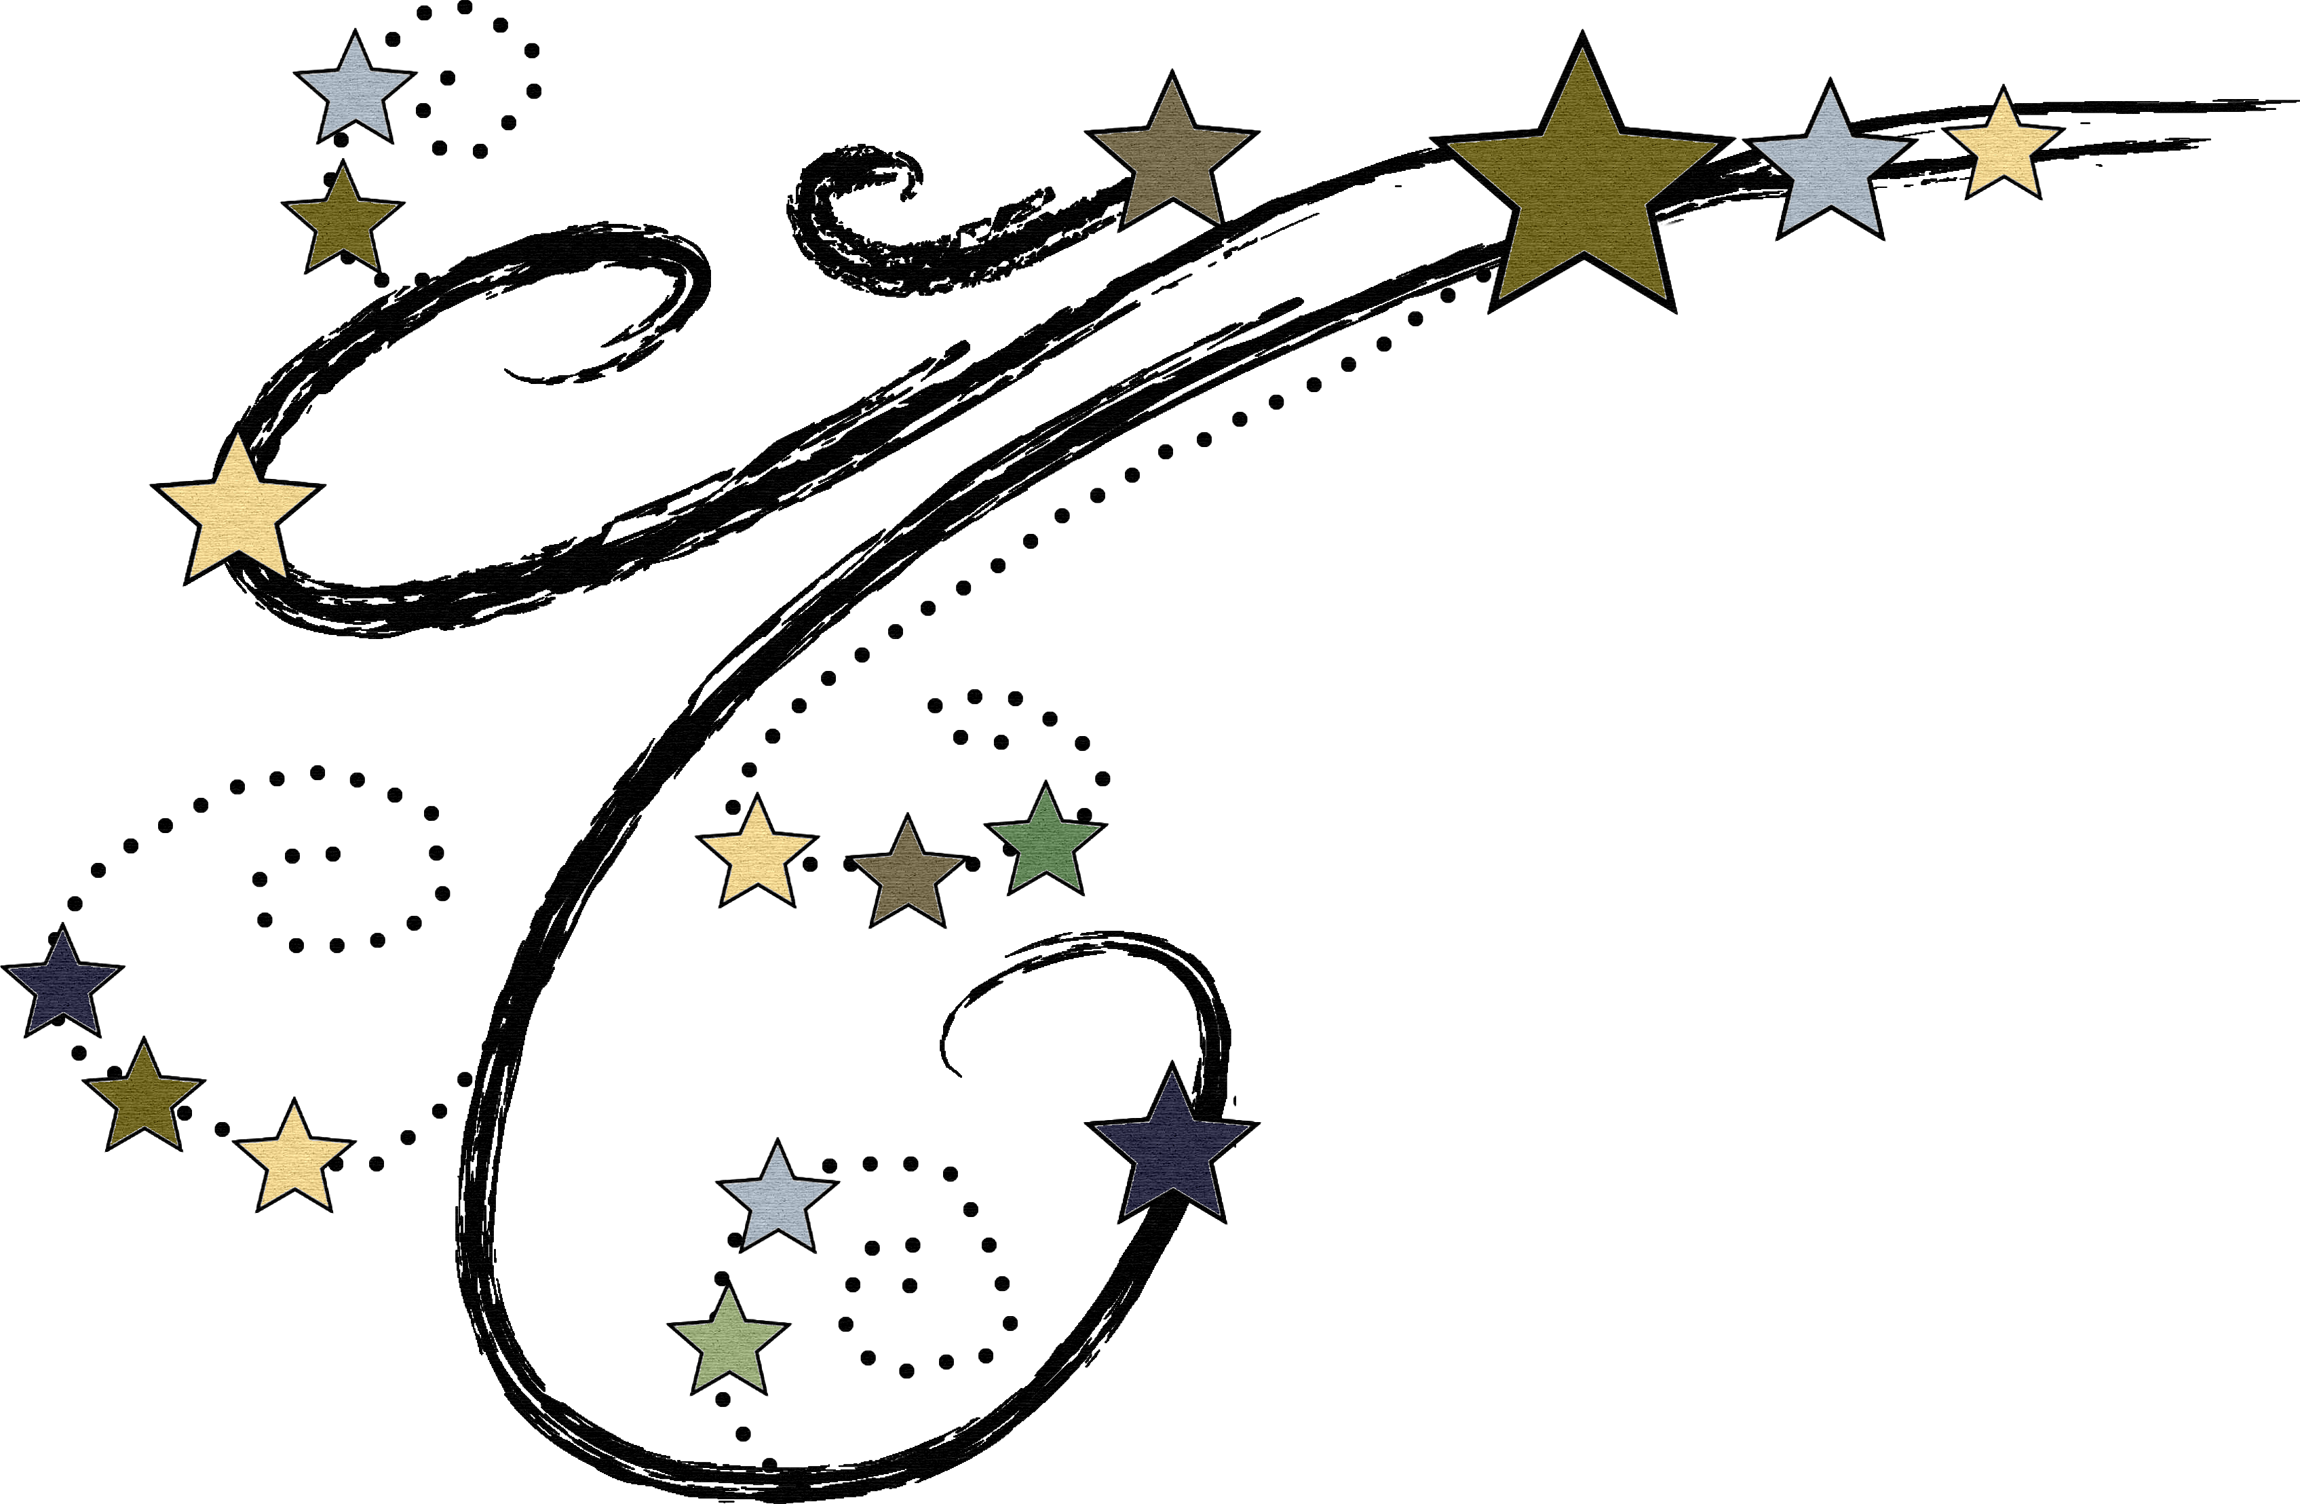 Shooting Star Free Svg Freeuse Download 177388 Png Images Pngio